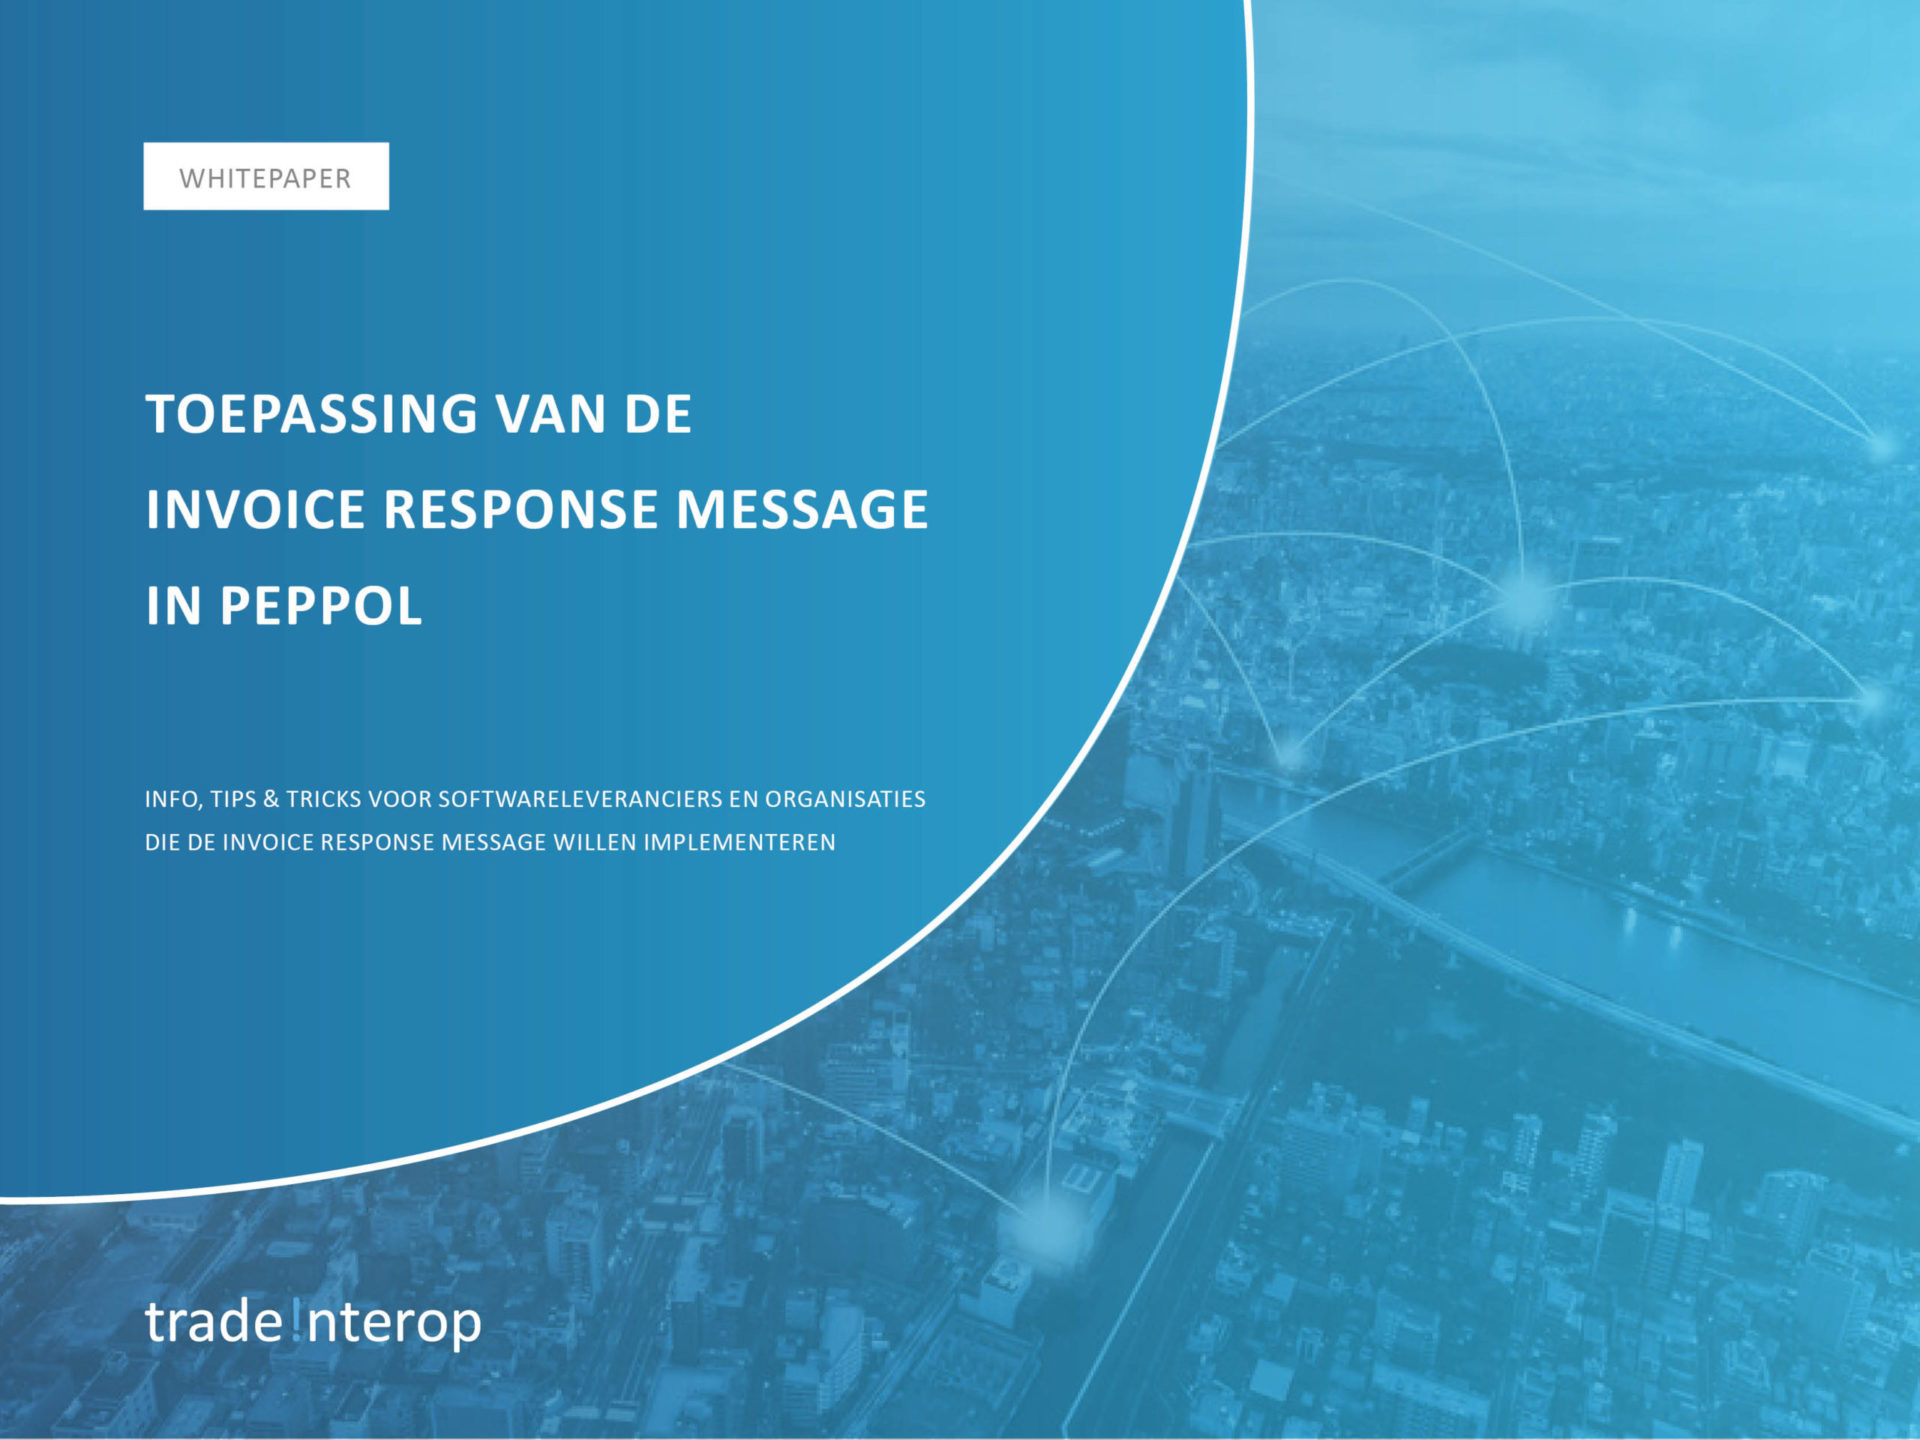 Front of white paper invoice response message